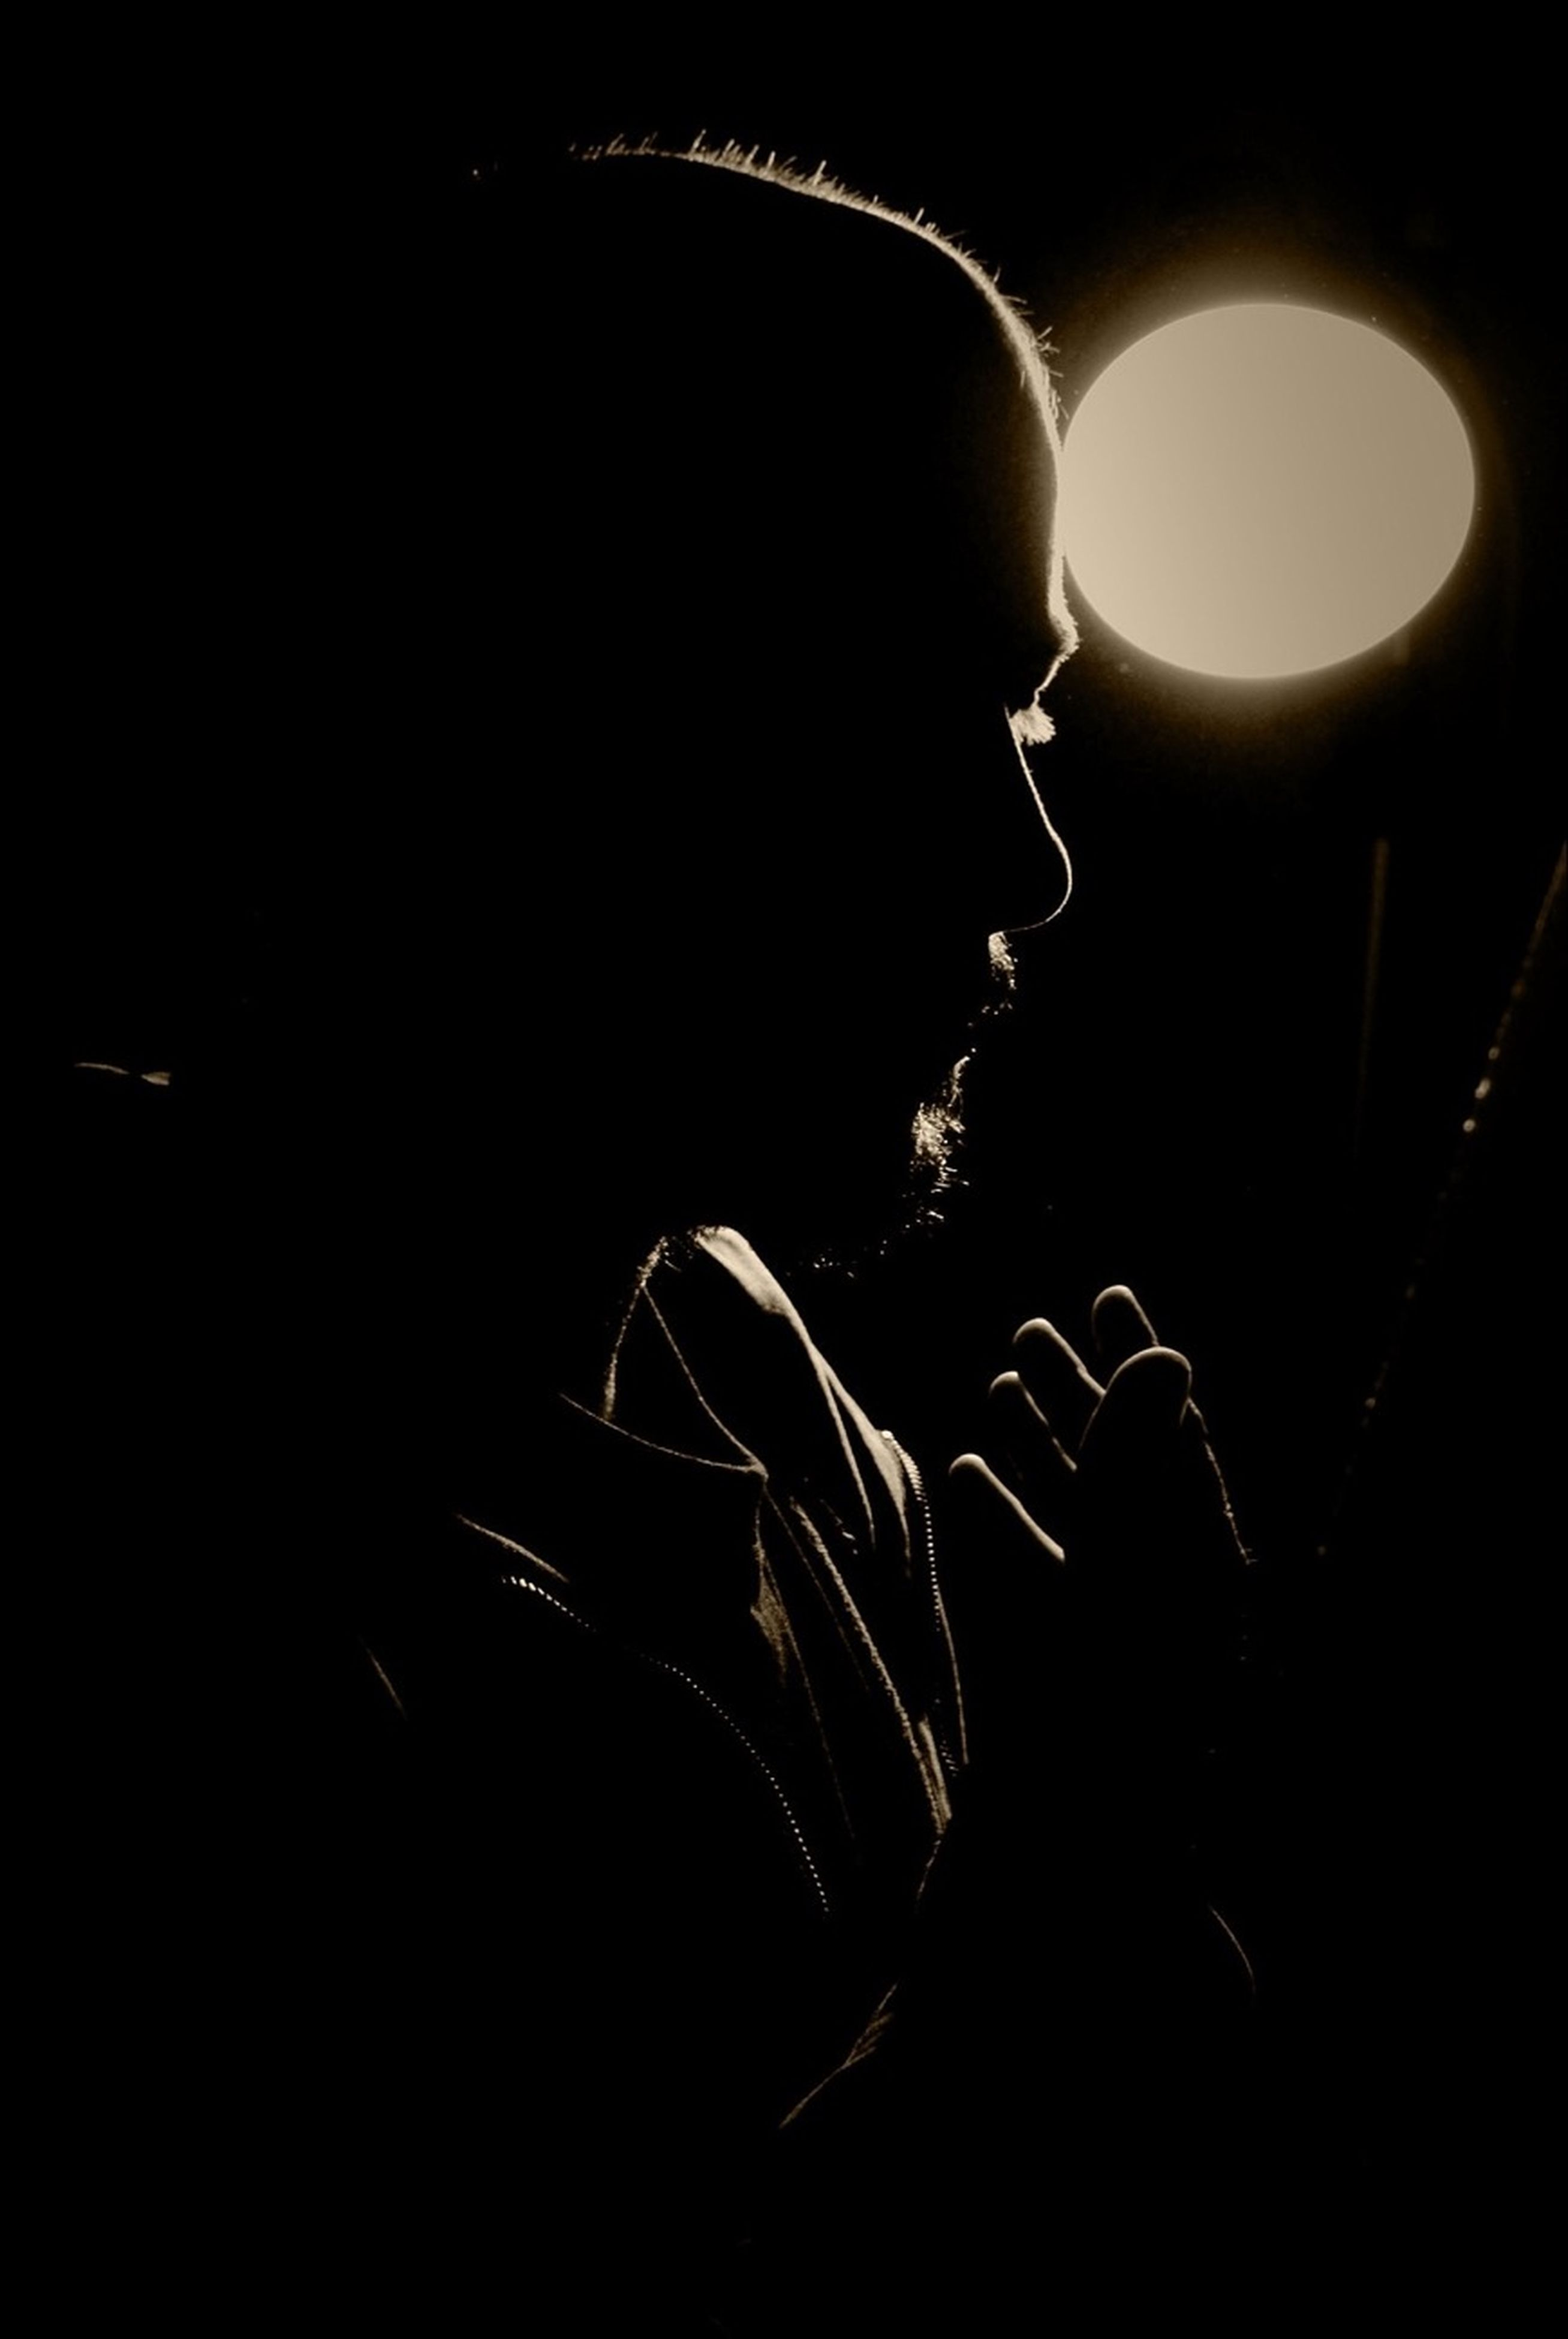 lifestyles, leisure activity, night, men, indoors, illuminated, arts culture and entertainment, dark, music, silhouette, person, light - natural phenomenon, young adult, standing, unrecognizable person, studio shot, holding, performance